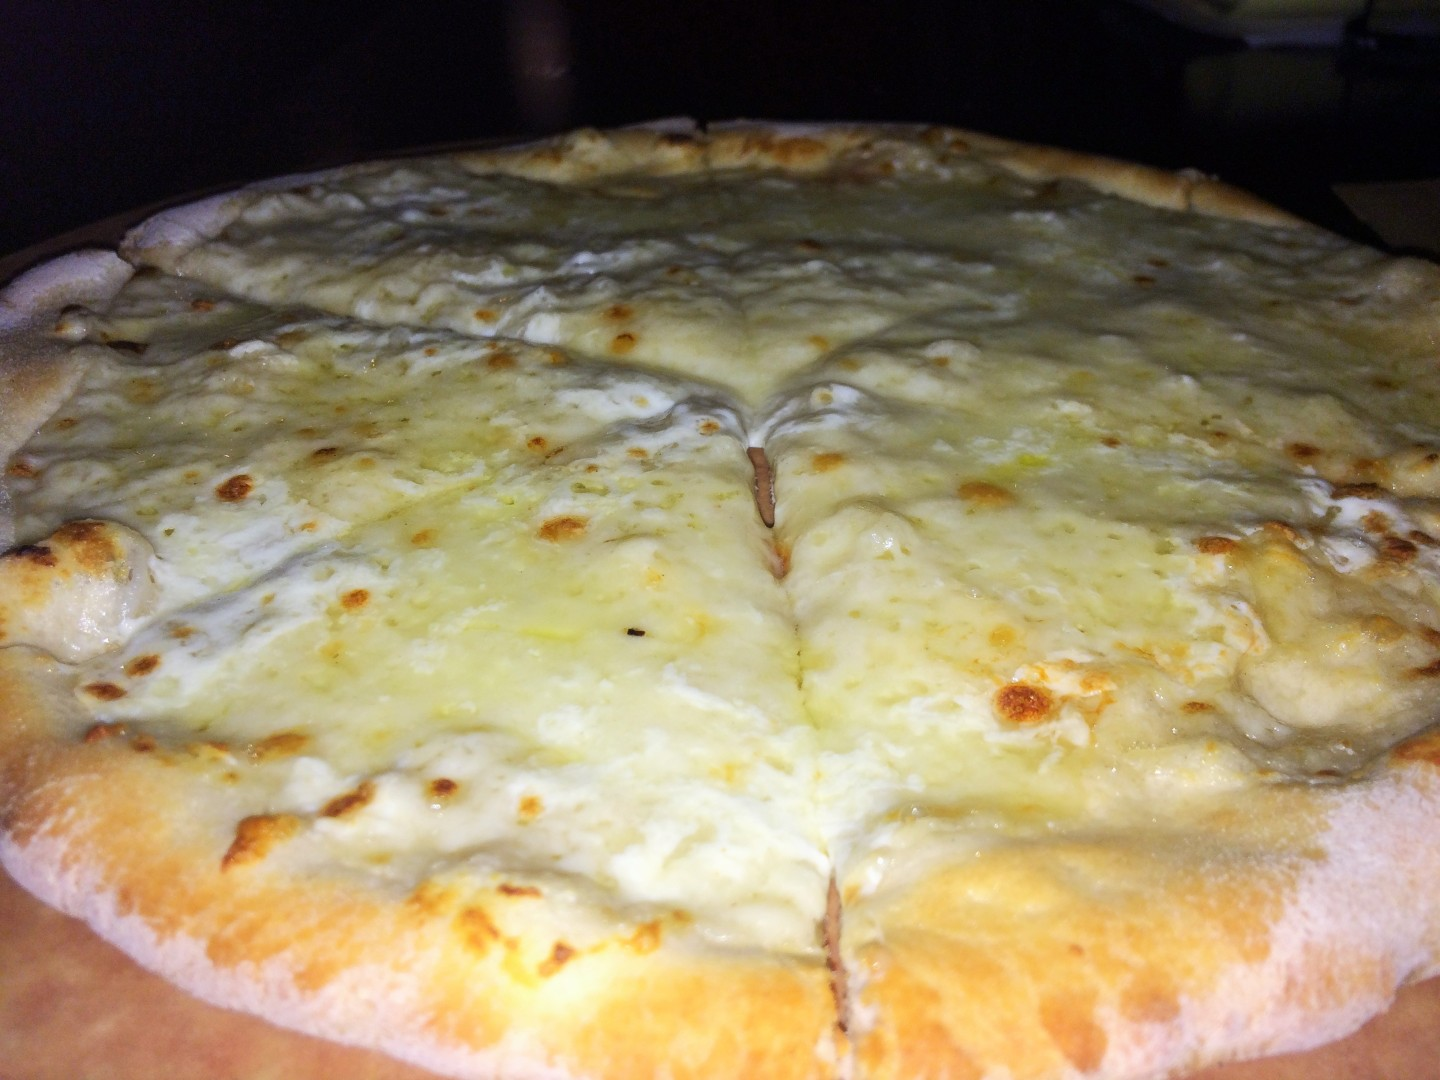 Three-cheese pizza with asiago, pecorino, and fontina, plus truffle cream.